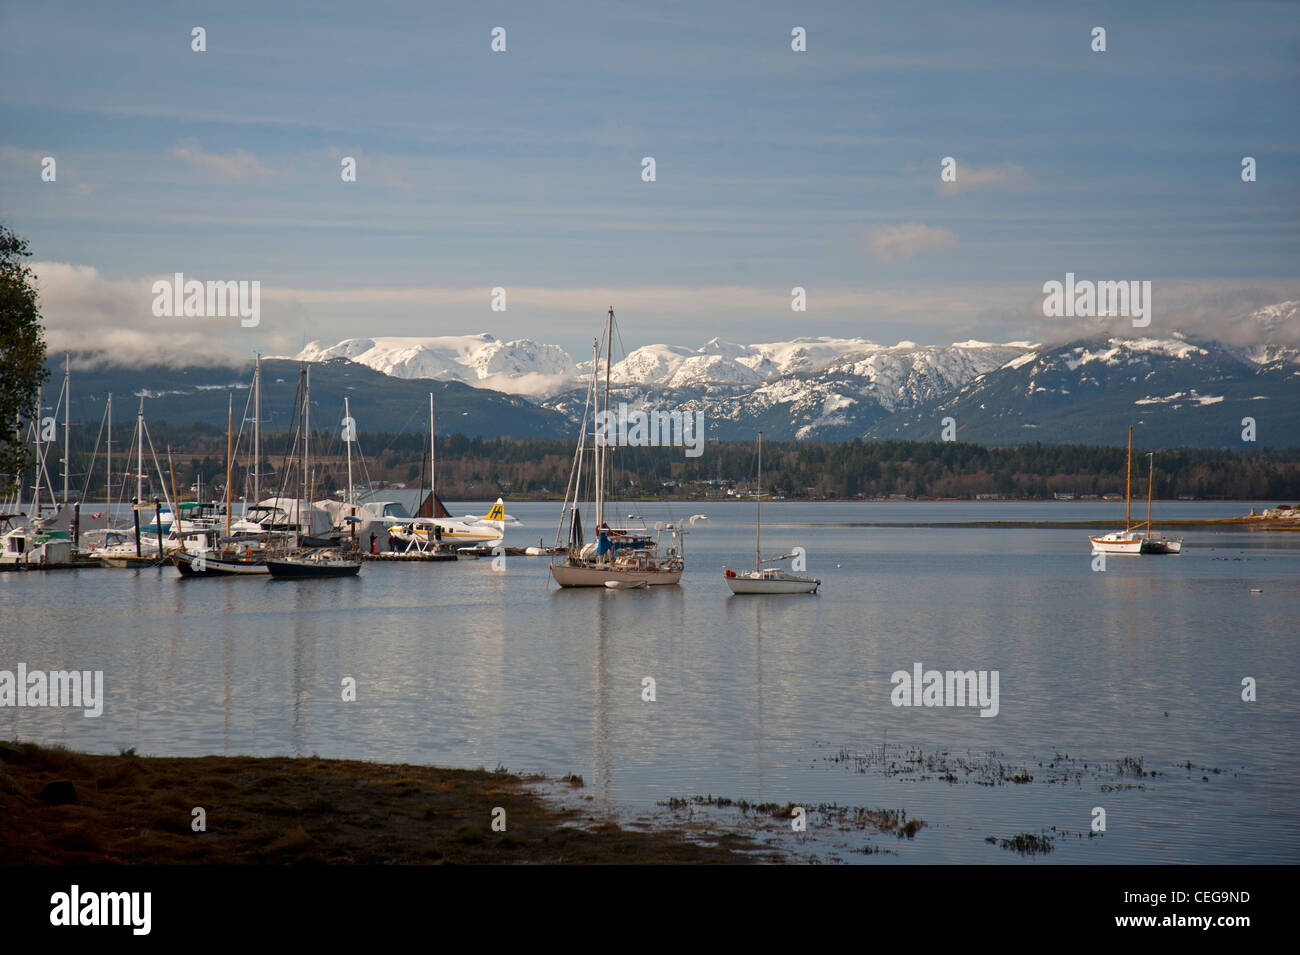 Comox harbour Yacht moorings and float plane berth, Vancouver Island British Columbia Canada.   SCO 7976 - Stock Image